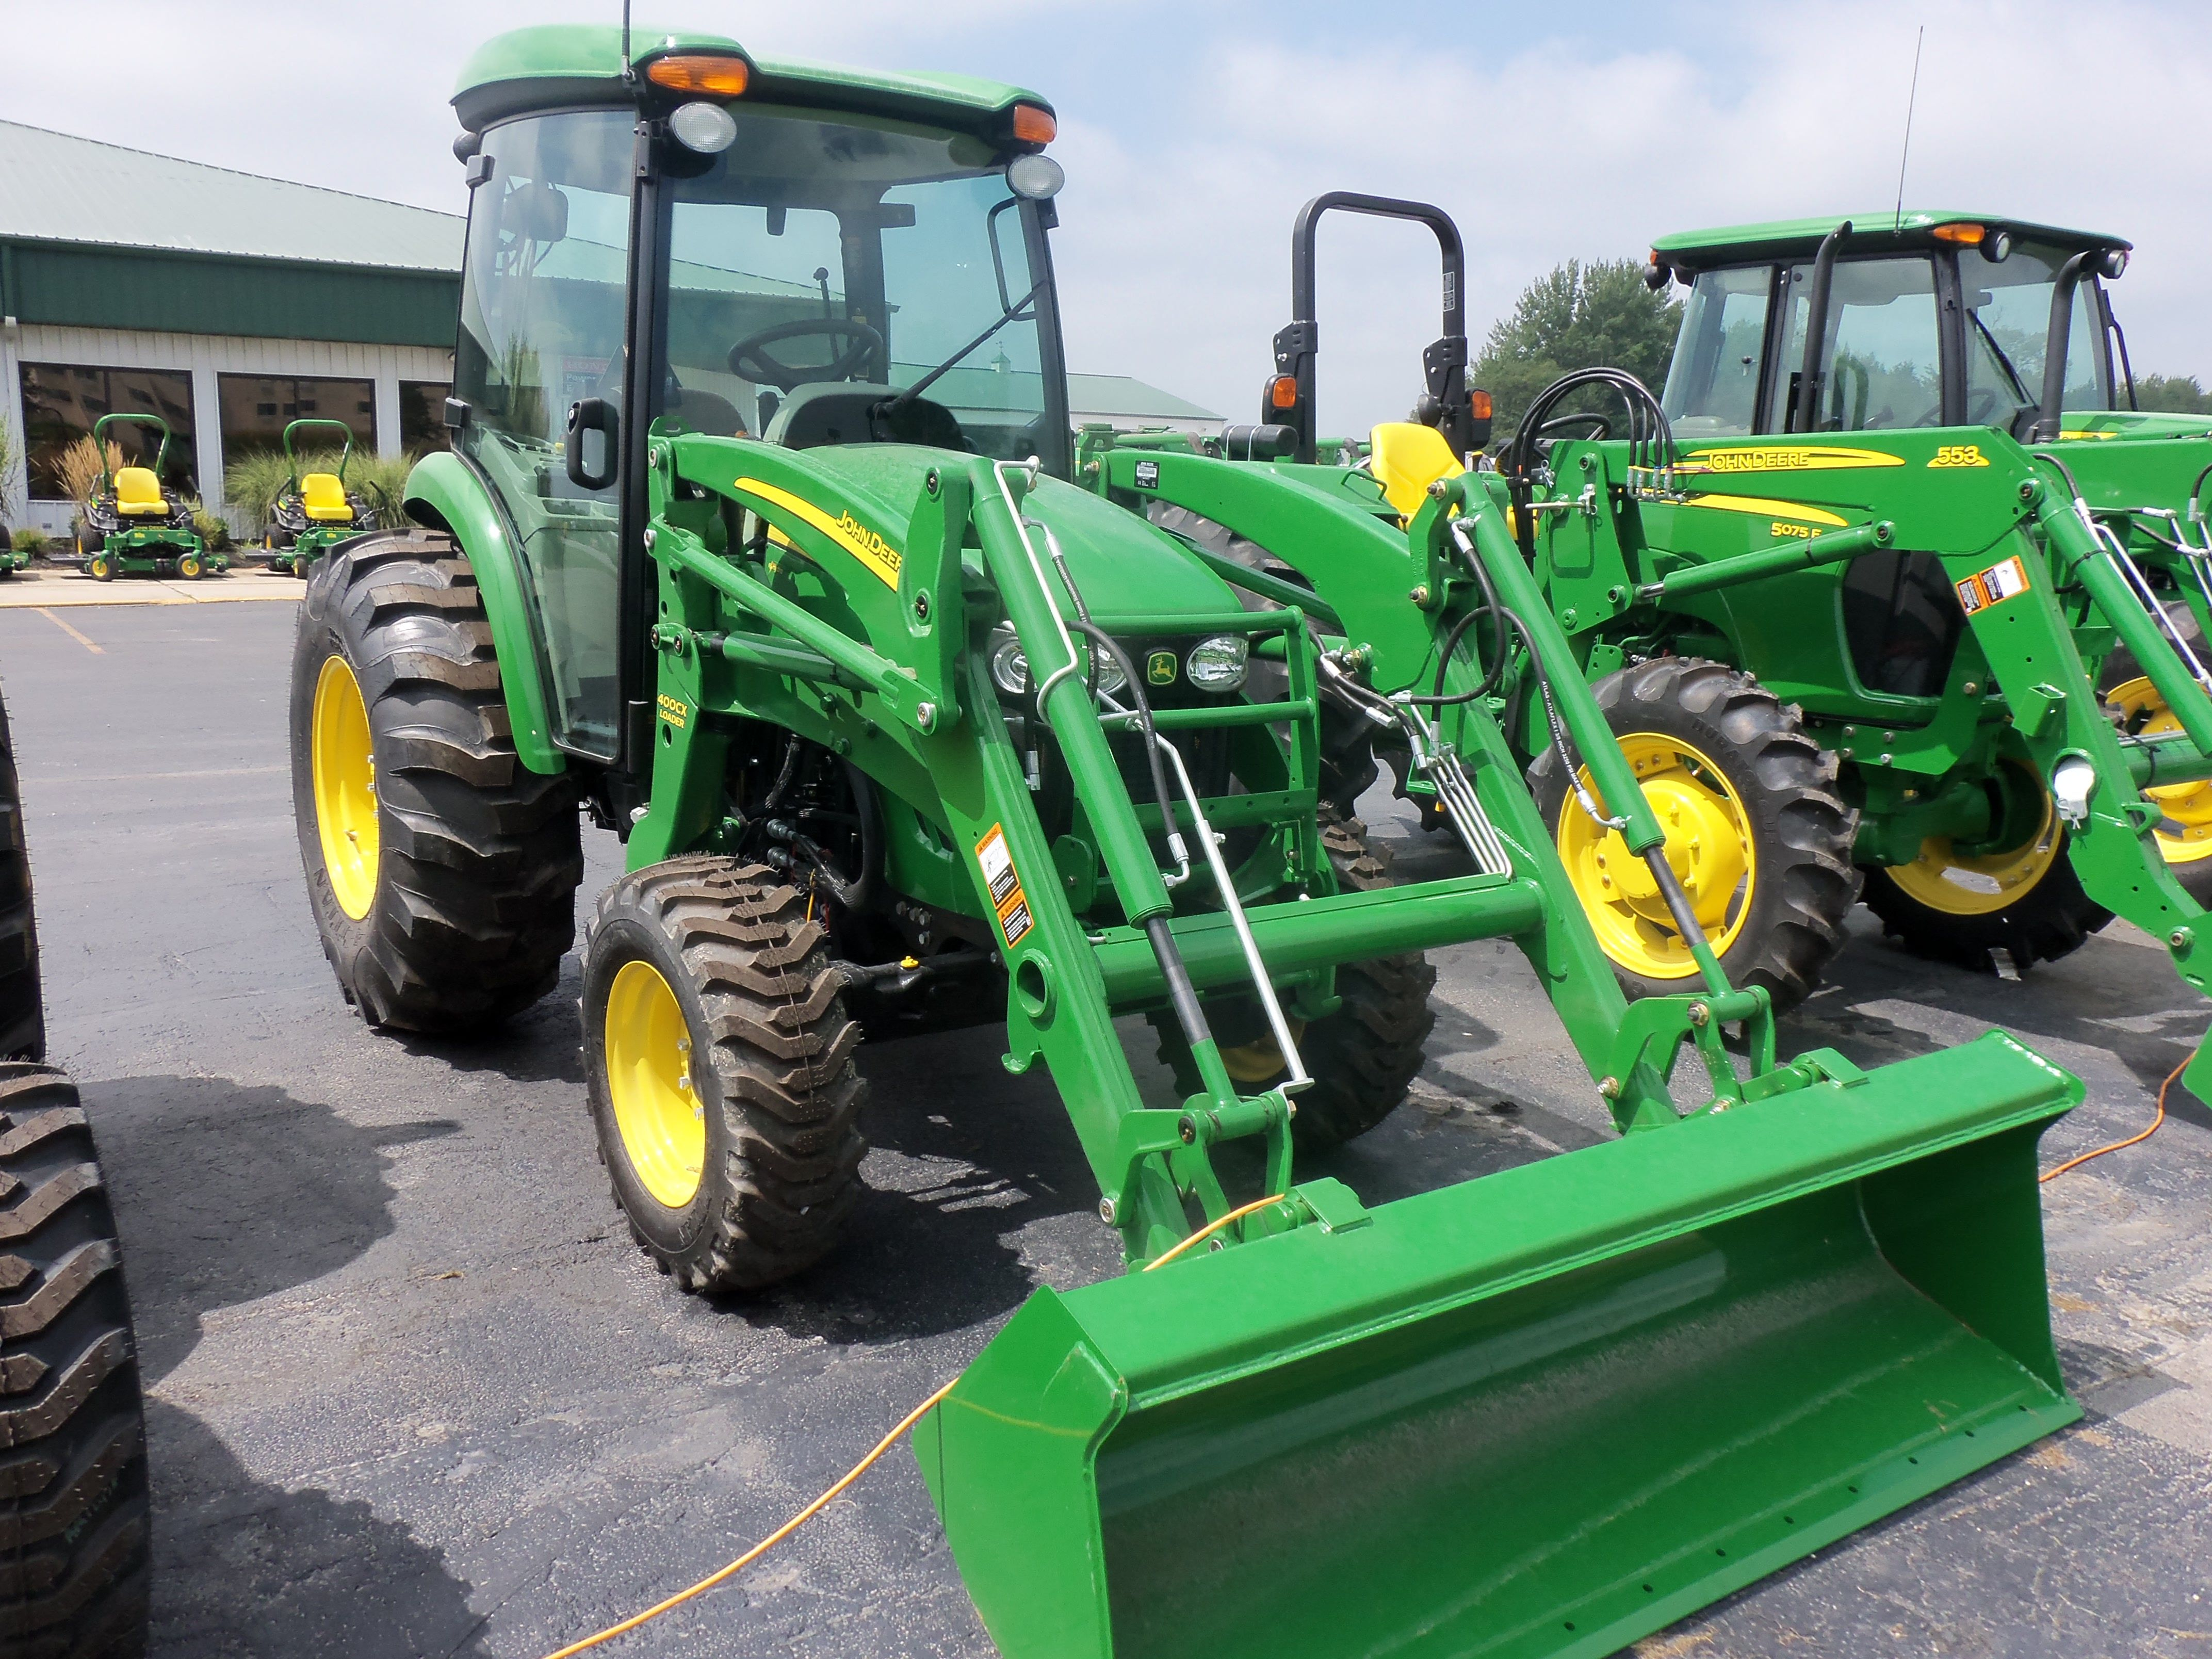 66 engine 56 pto hp john deere 4720 cab tractor with 400cx loader turbocharged 149 cid diesel 3 700 lbs 15 gallon fuel tank 72 inch wheelbase [ 4288 x 3216 Pixel ]